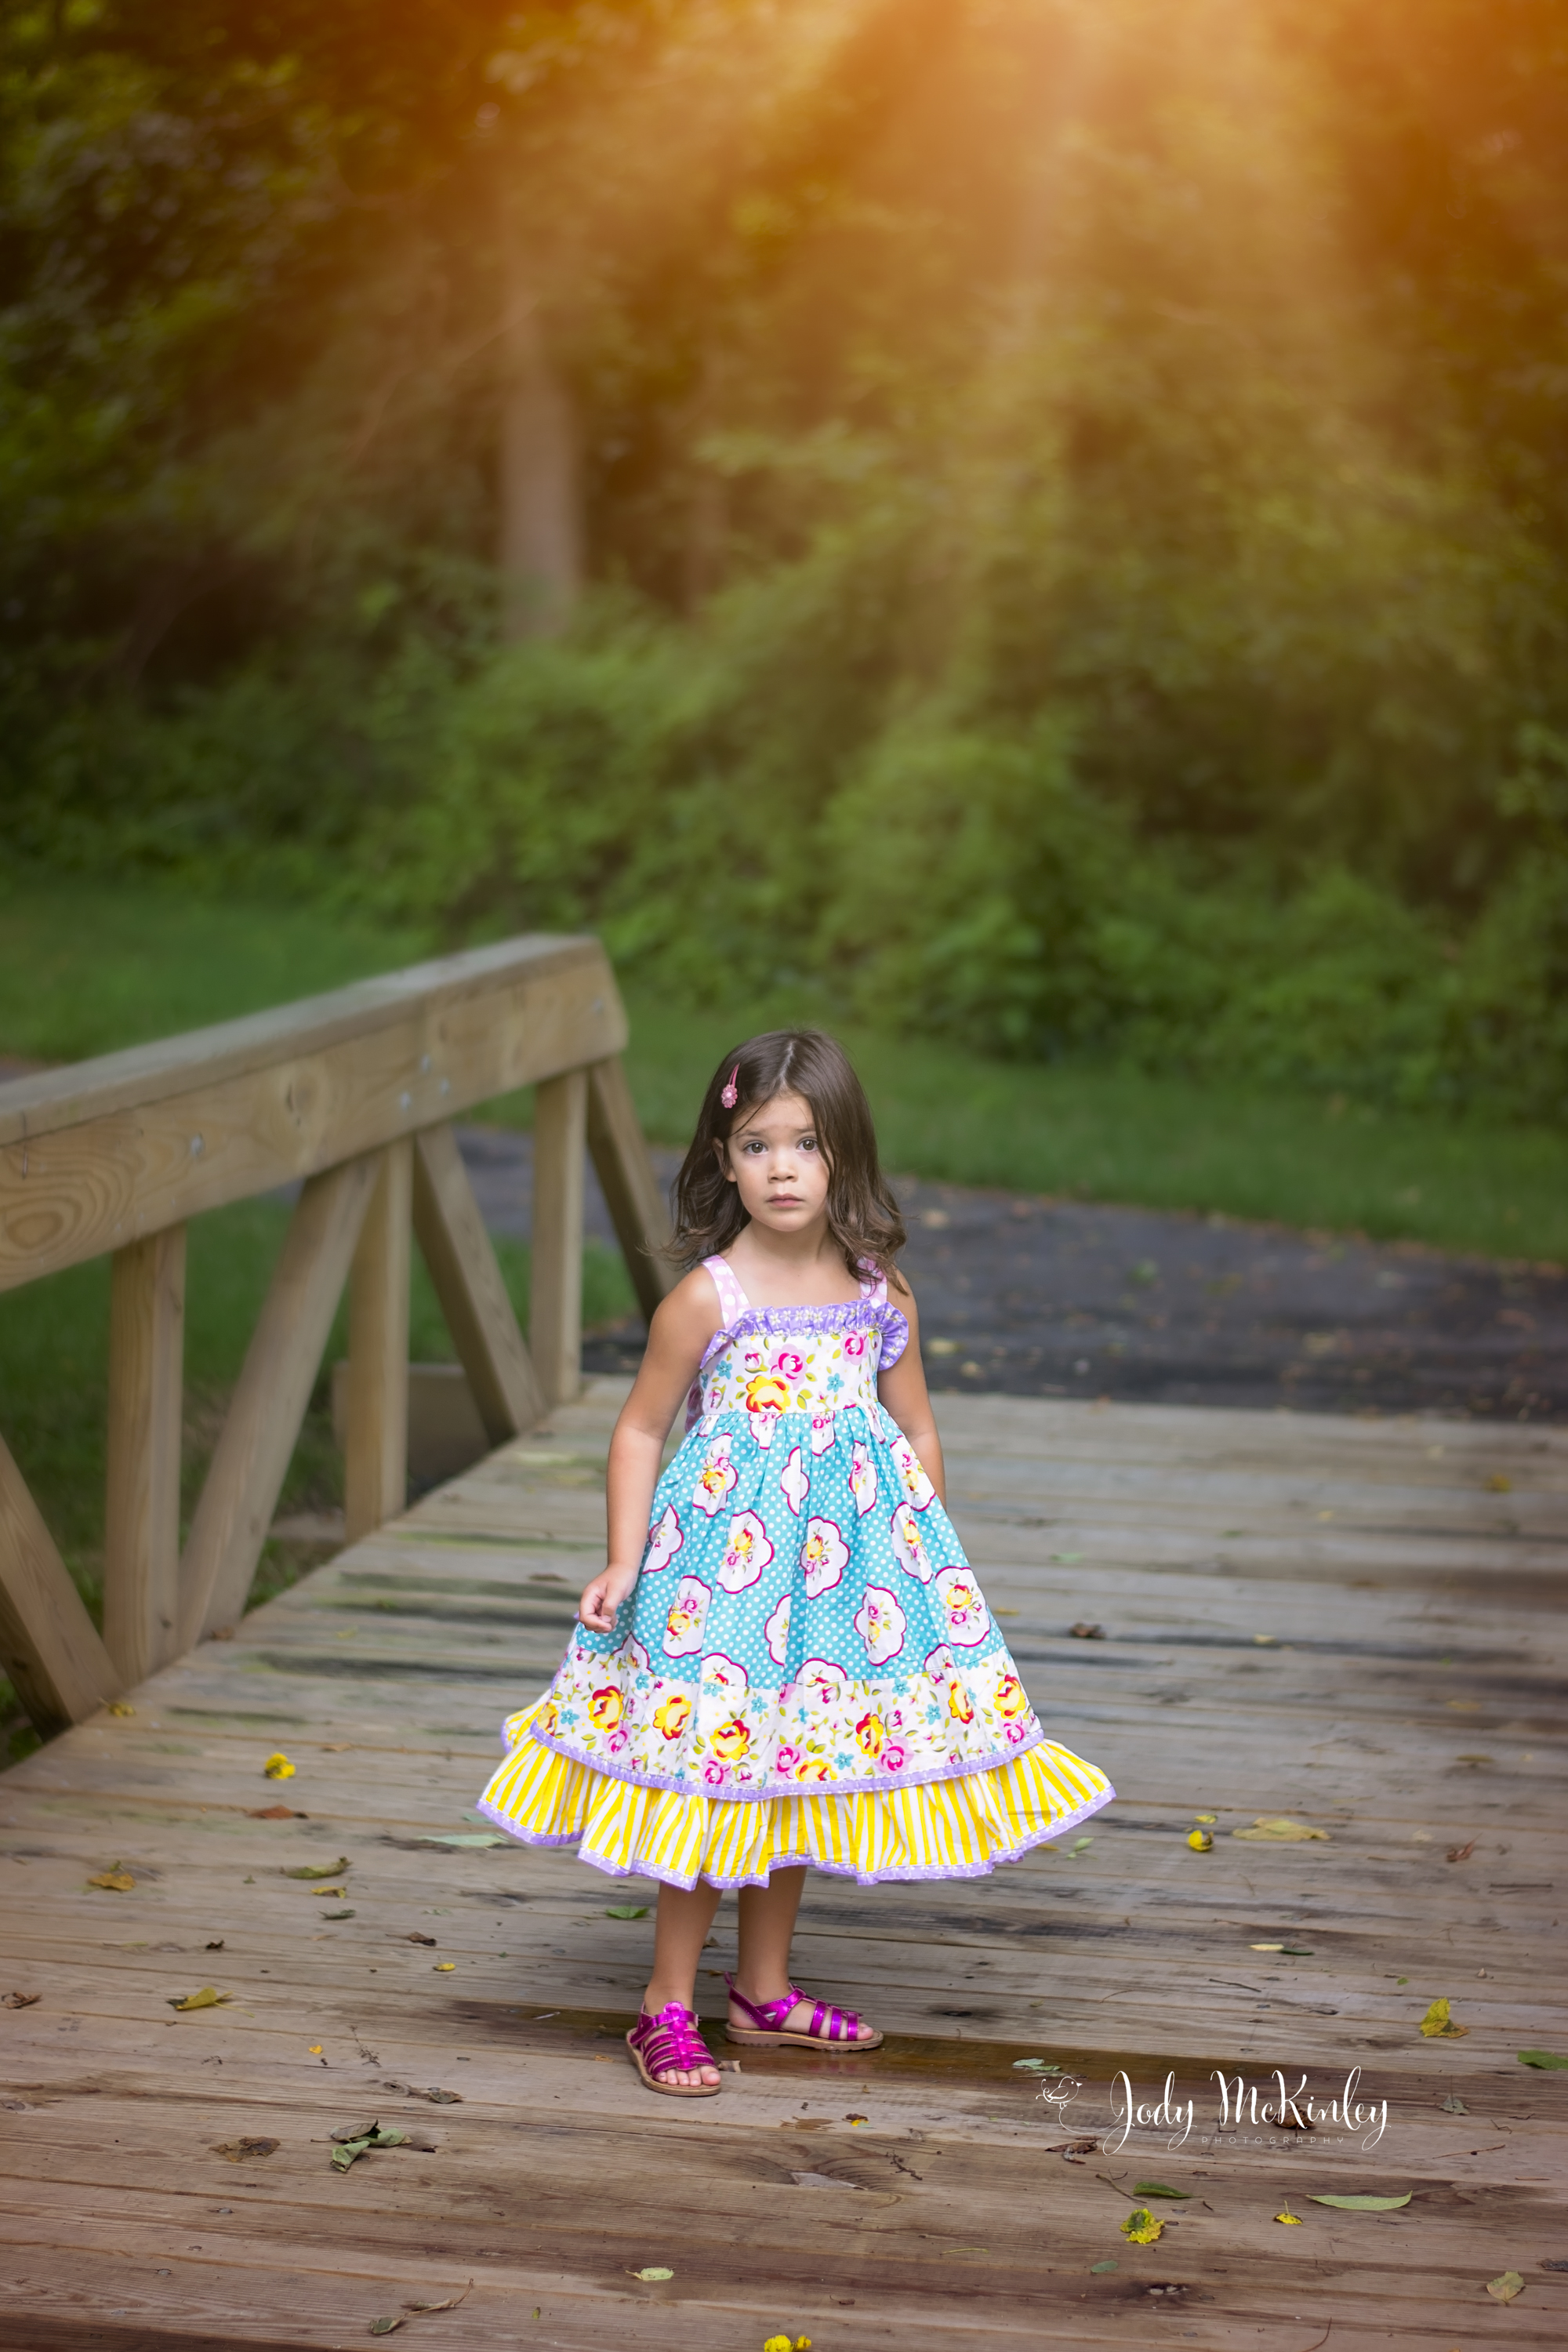 photo of young girl on wooden bridge